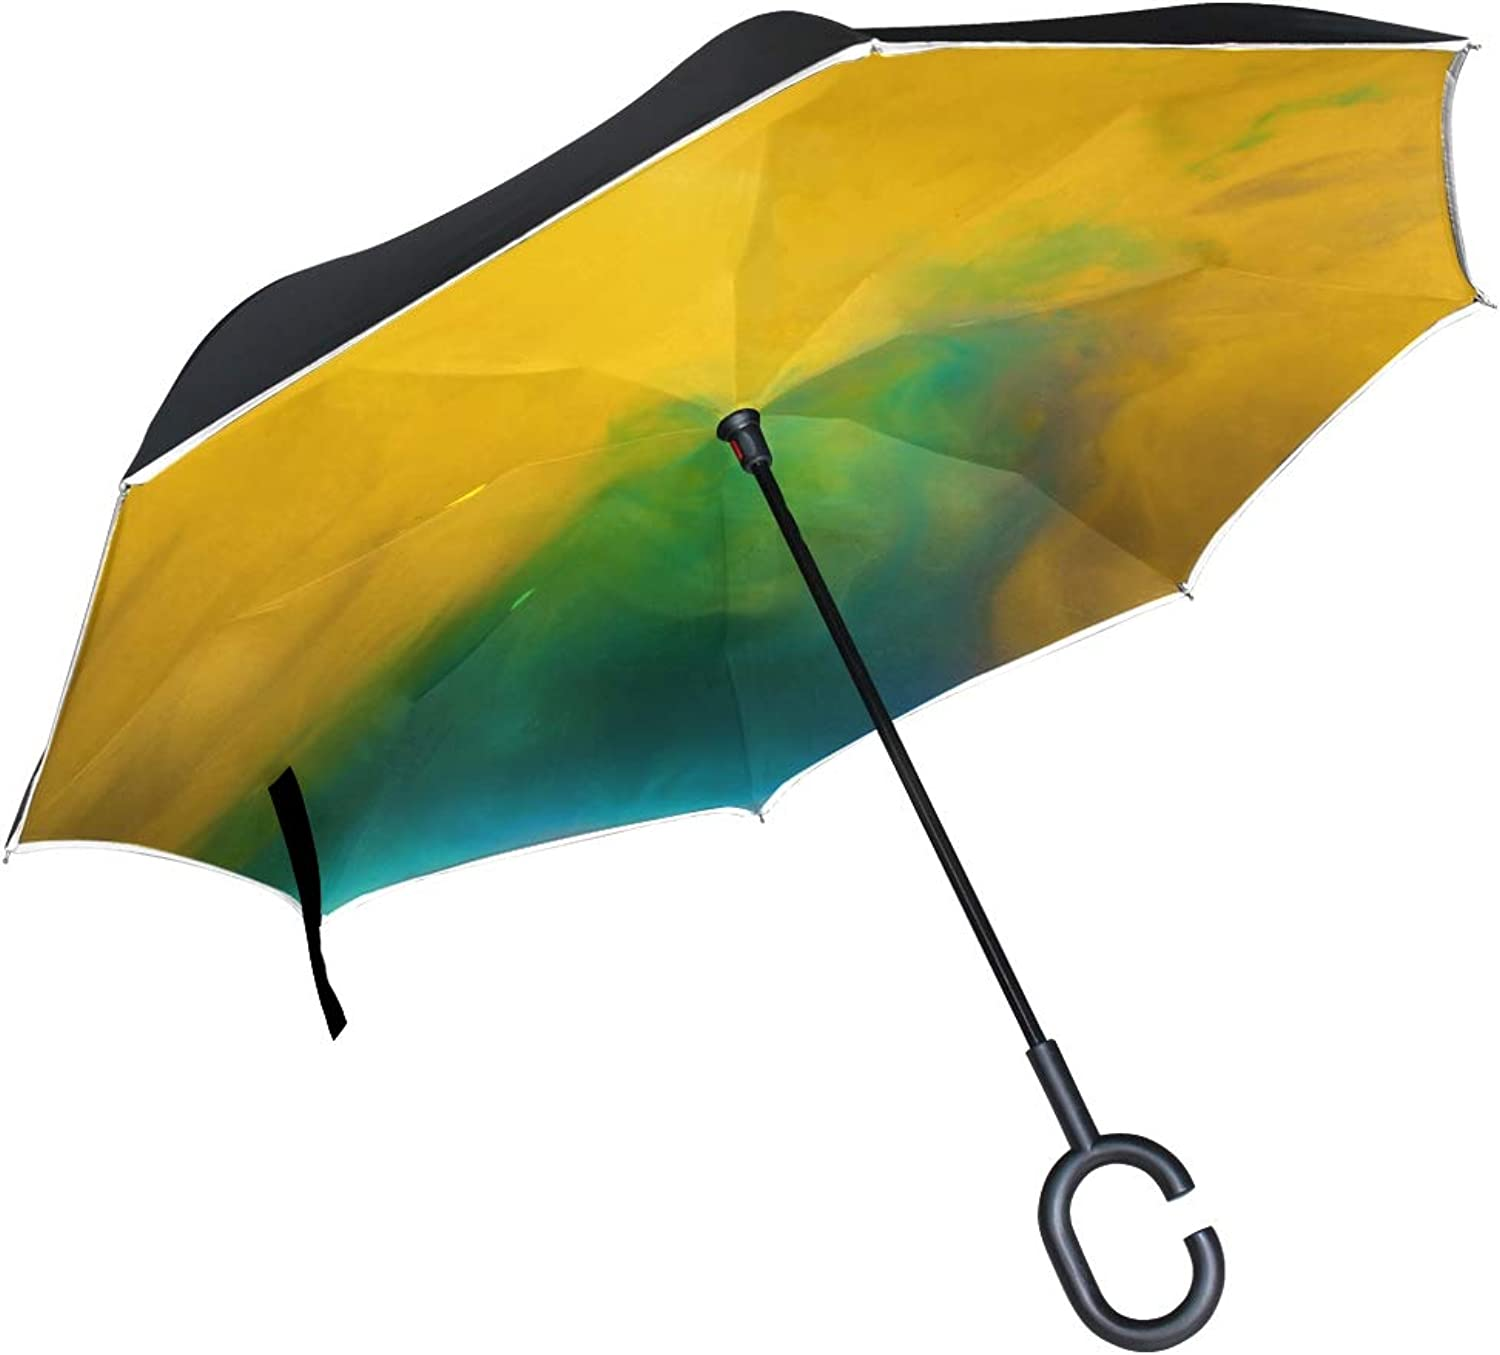 Double Layer Ingreened Abstract Art blueer Water color Desktop Acrylic Umbrellas Reverse Folding Umbrella Windproof Uv Predection Big Straight Umbrella for Car Rain Outdoor with CShaped Handle